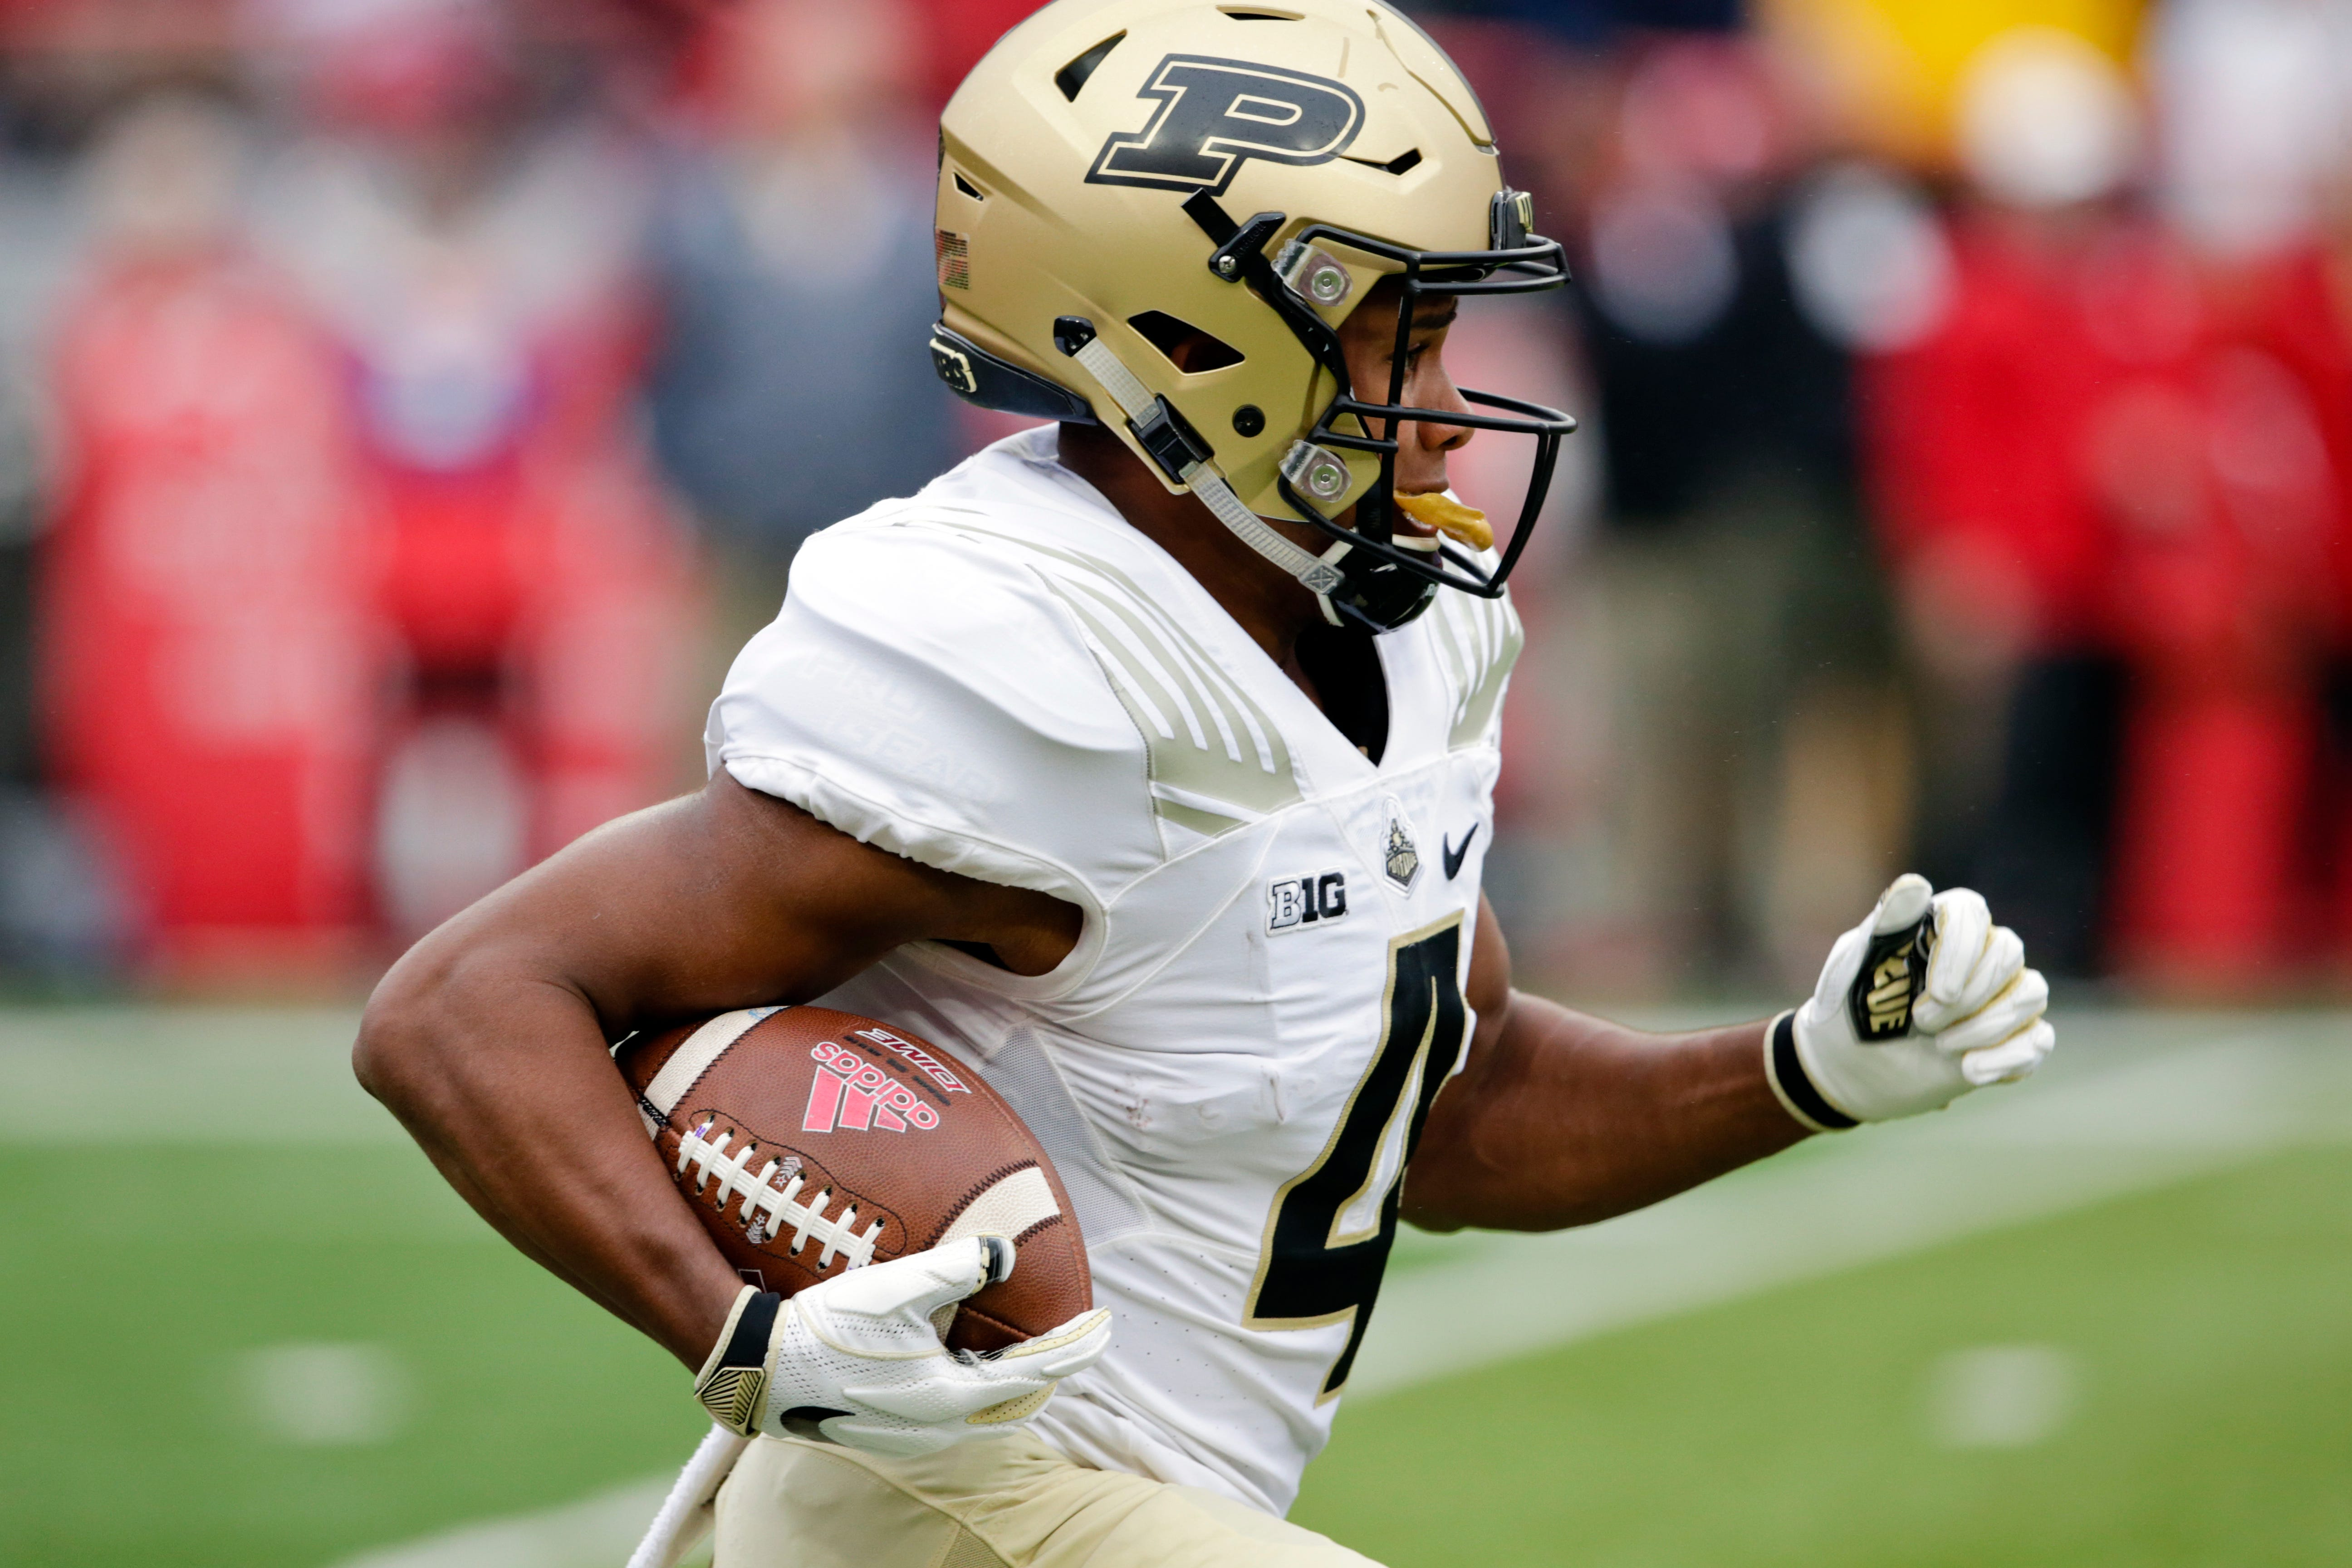 Purdue wide receiver Rondale Moore returns a kick during the first half against Nebraska.